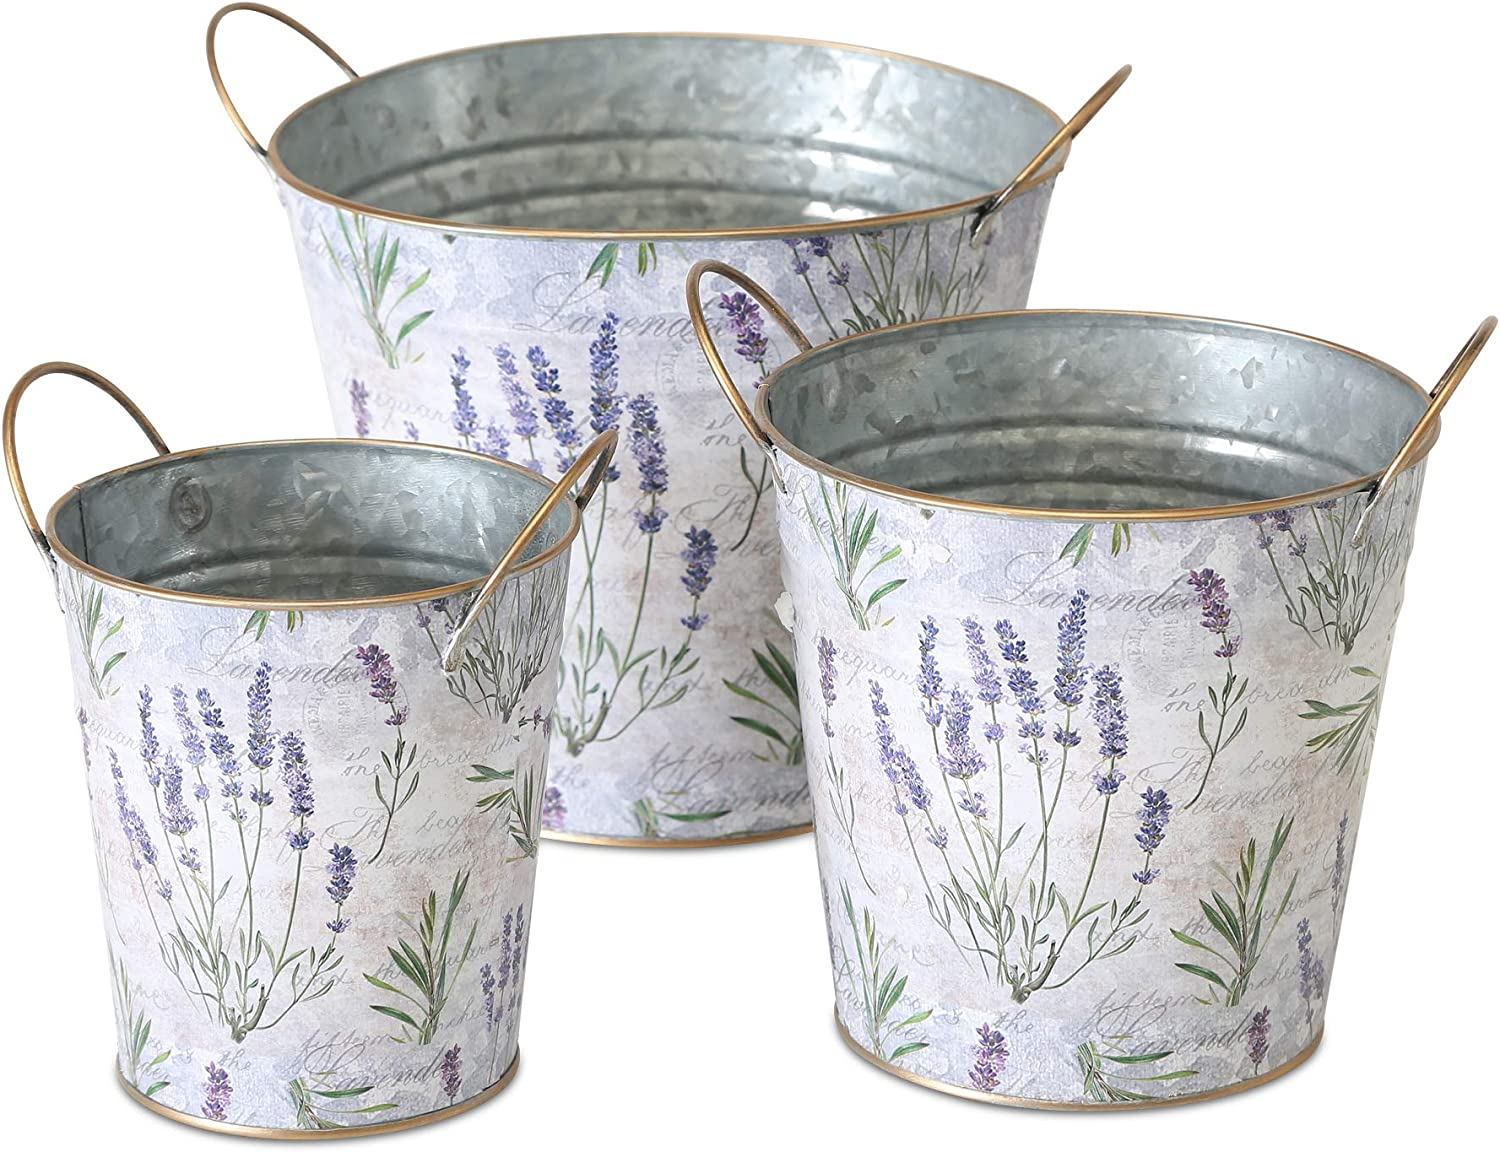 WHW Whole House Worlds Lavender de Provence Cache Pot Planters, Set of 3, French Country Botanicals, Zinc, Rustic White, Purple, Green, Gold Accent Handles and Rolled Rims